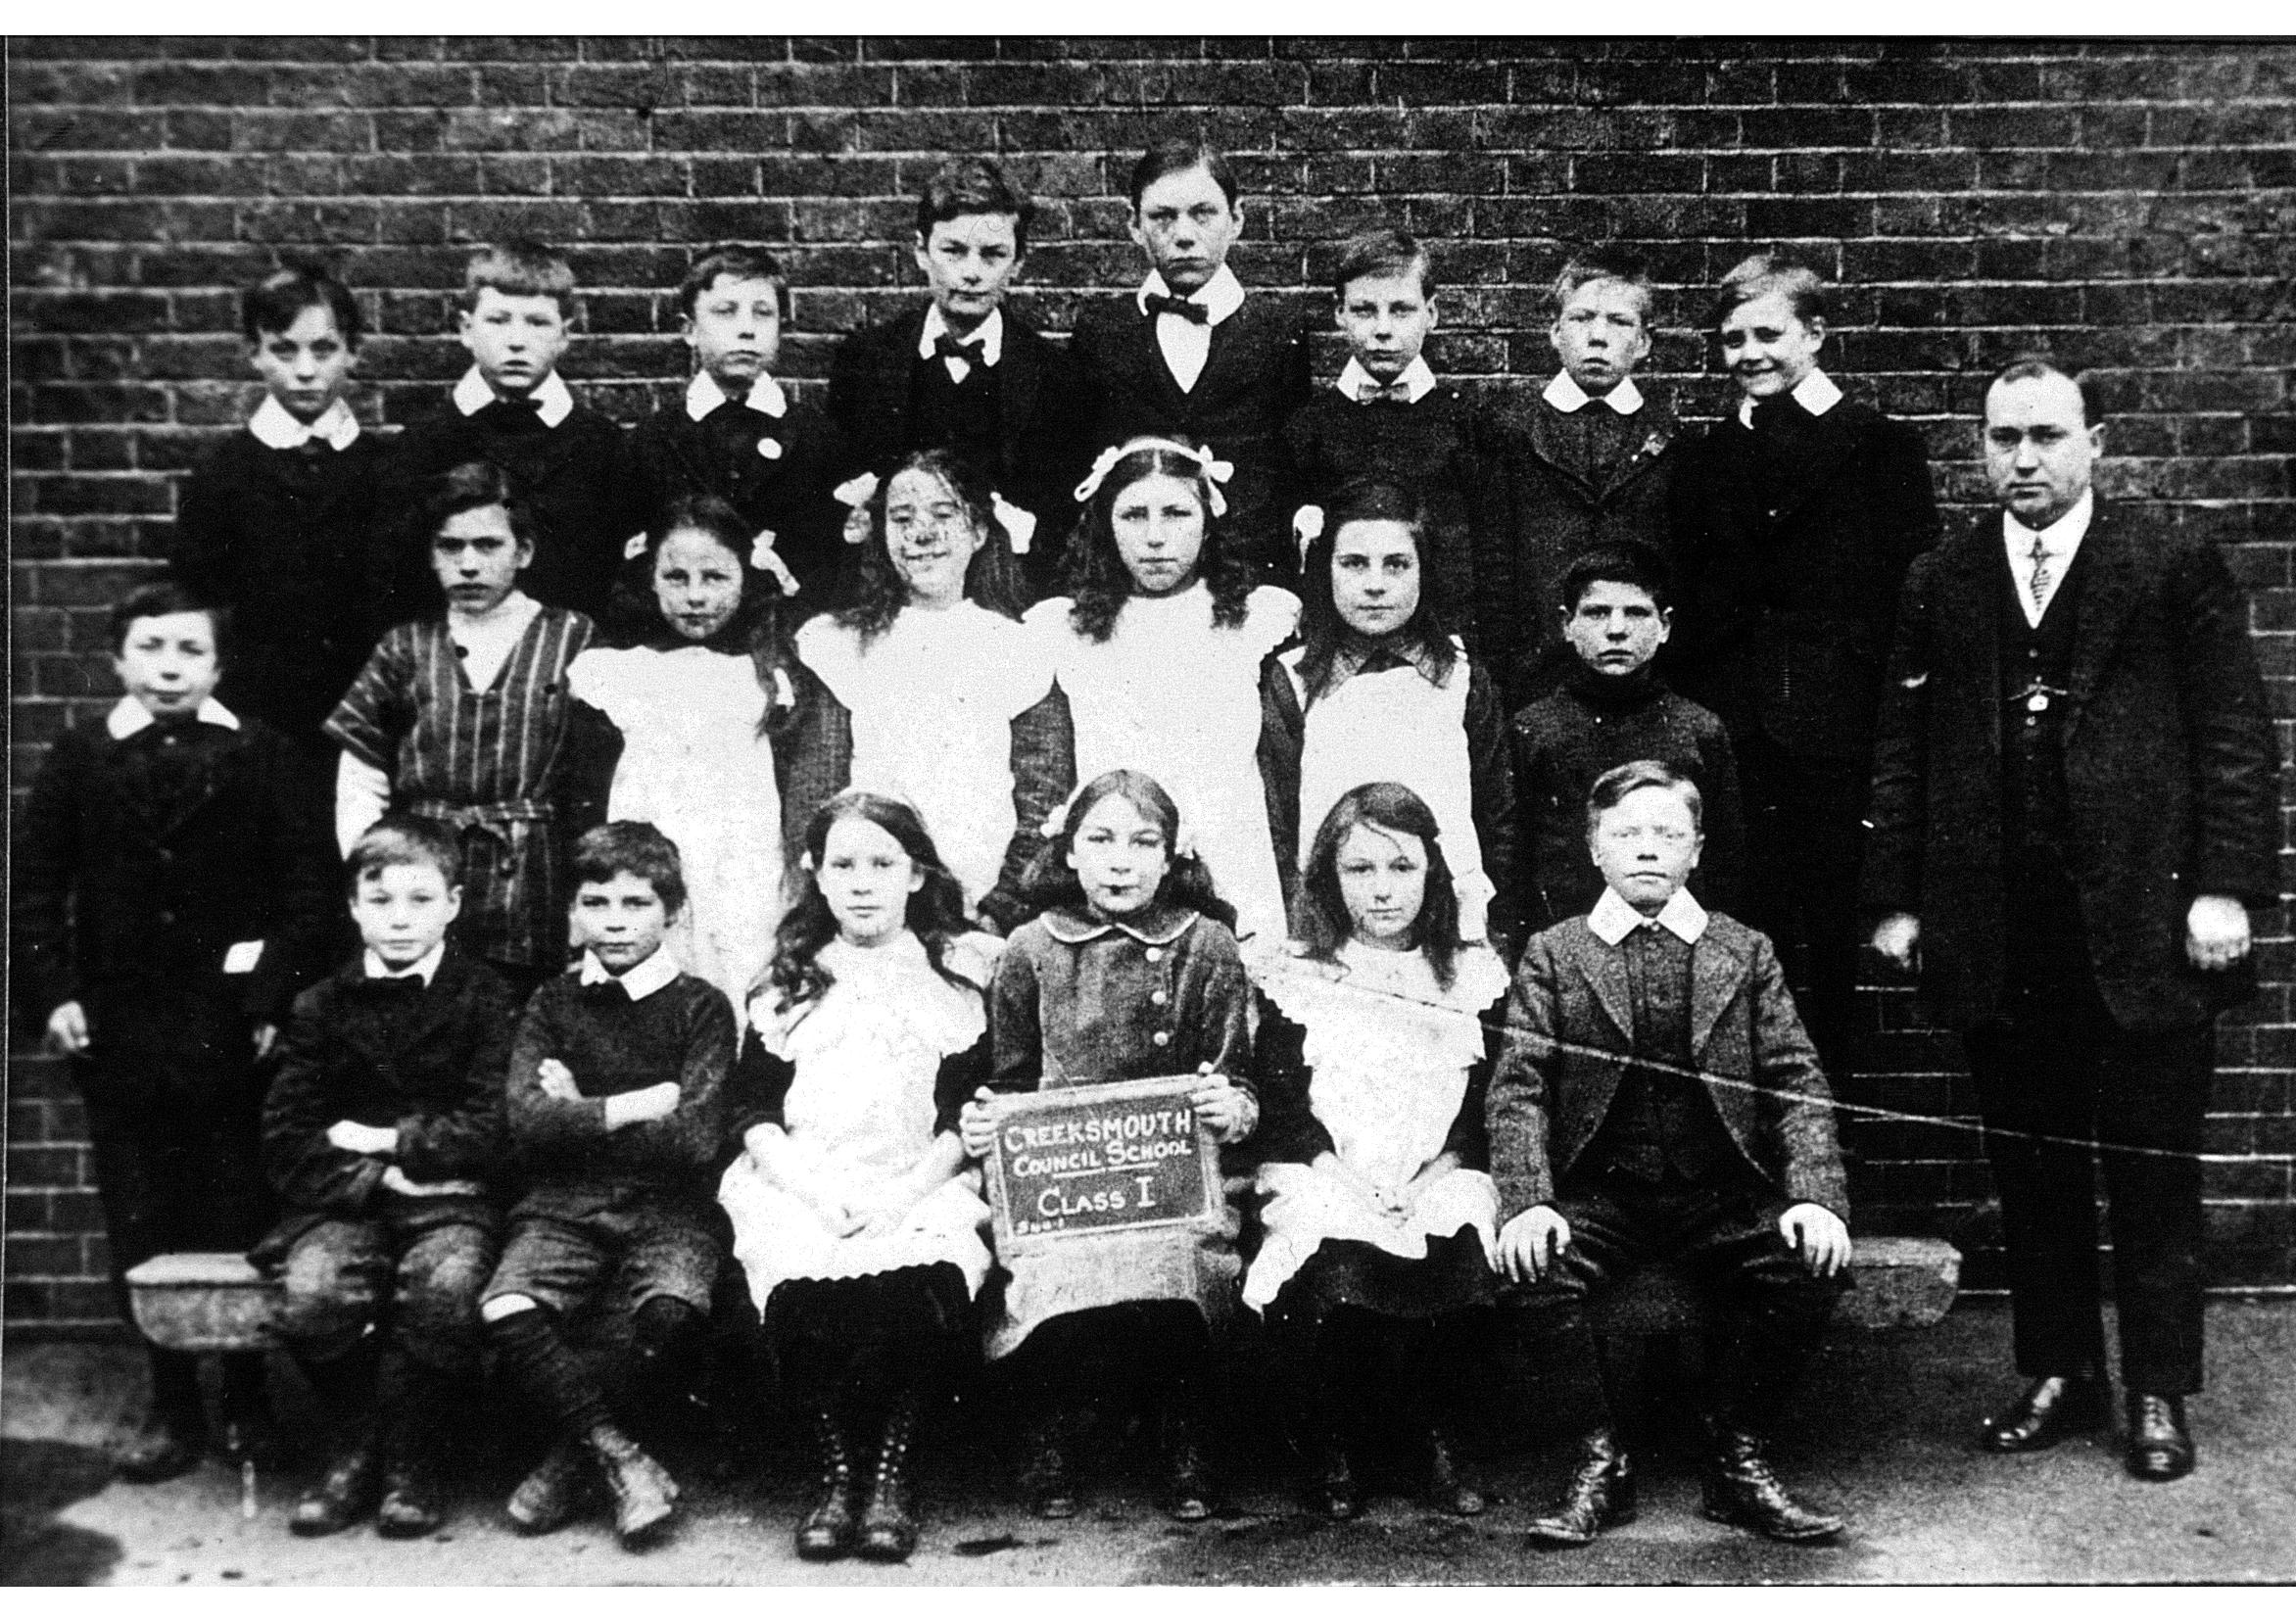 Photograph of pupils from Creekmouth School circa. 1910